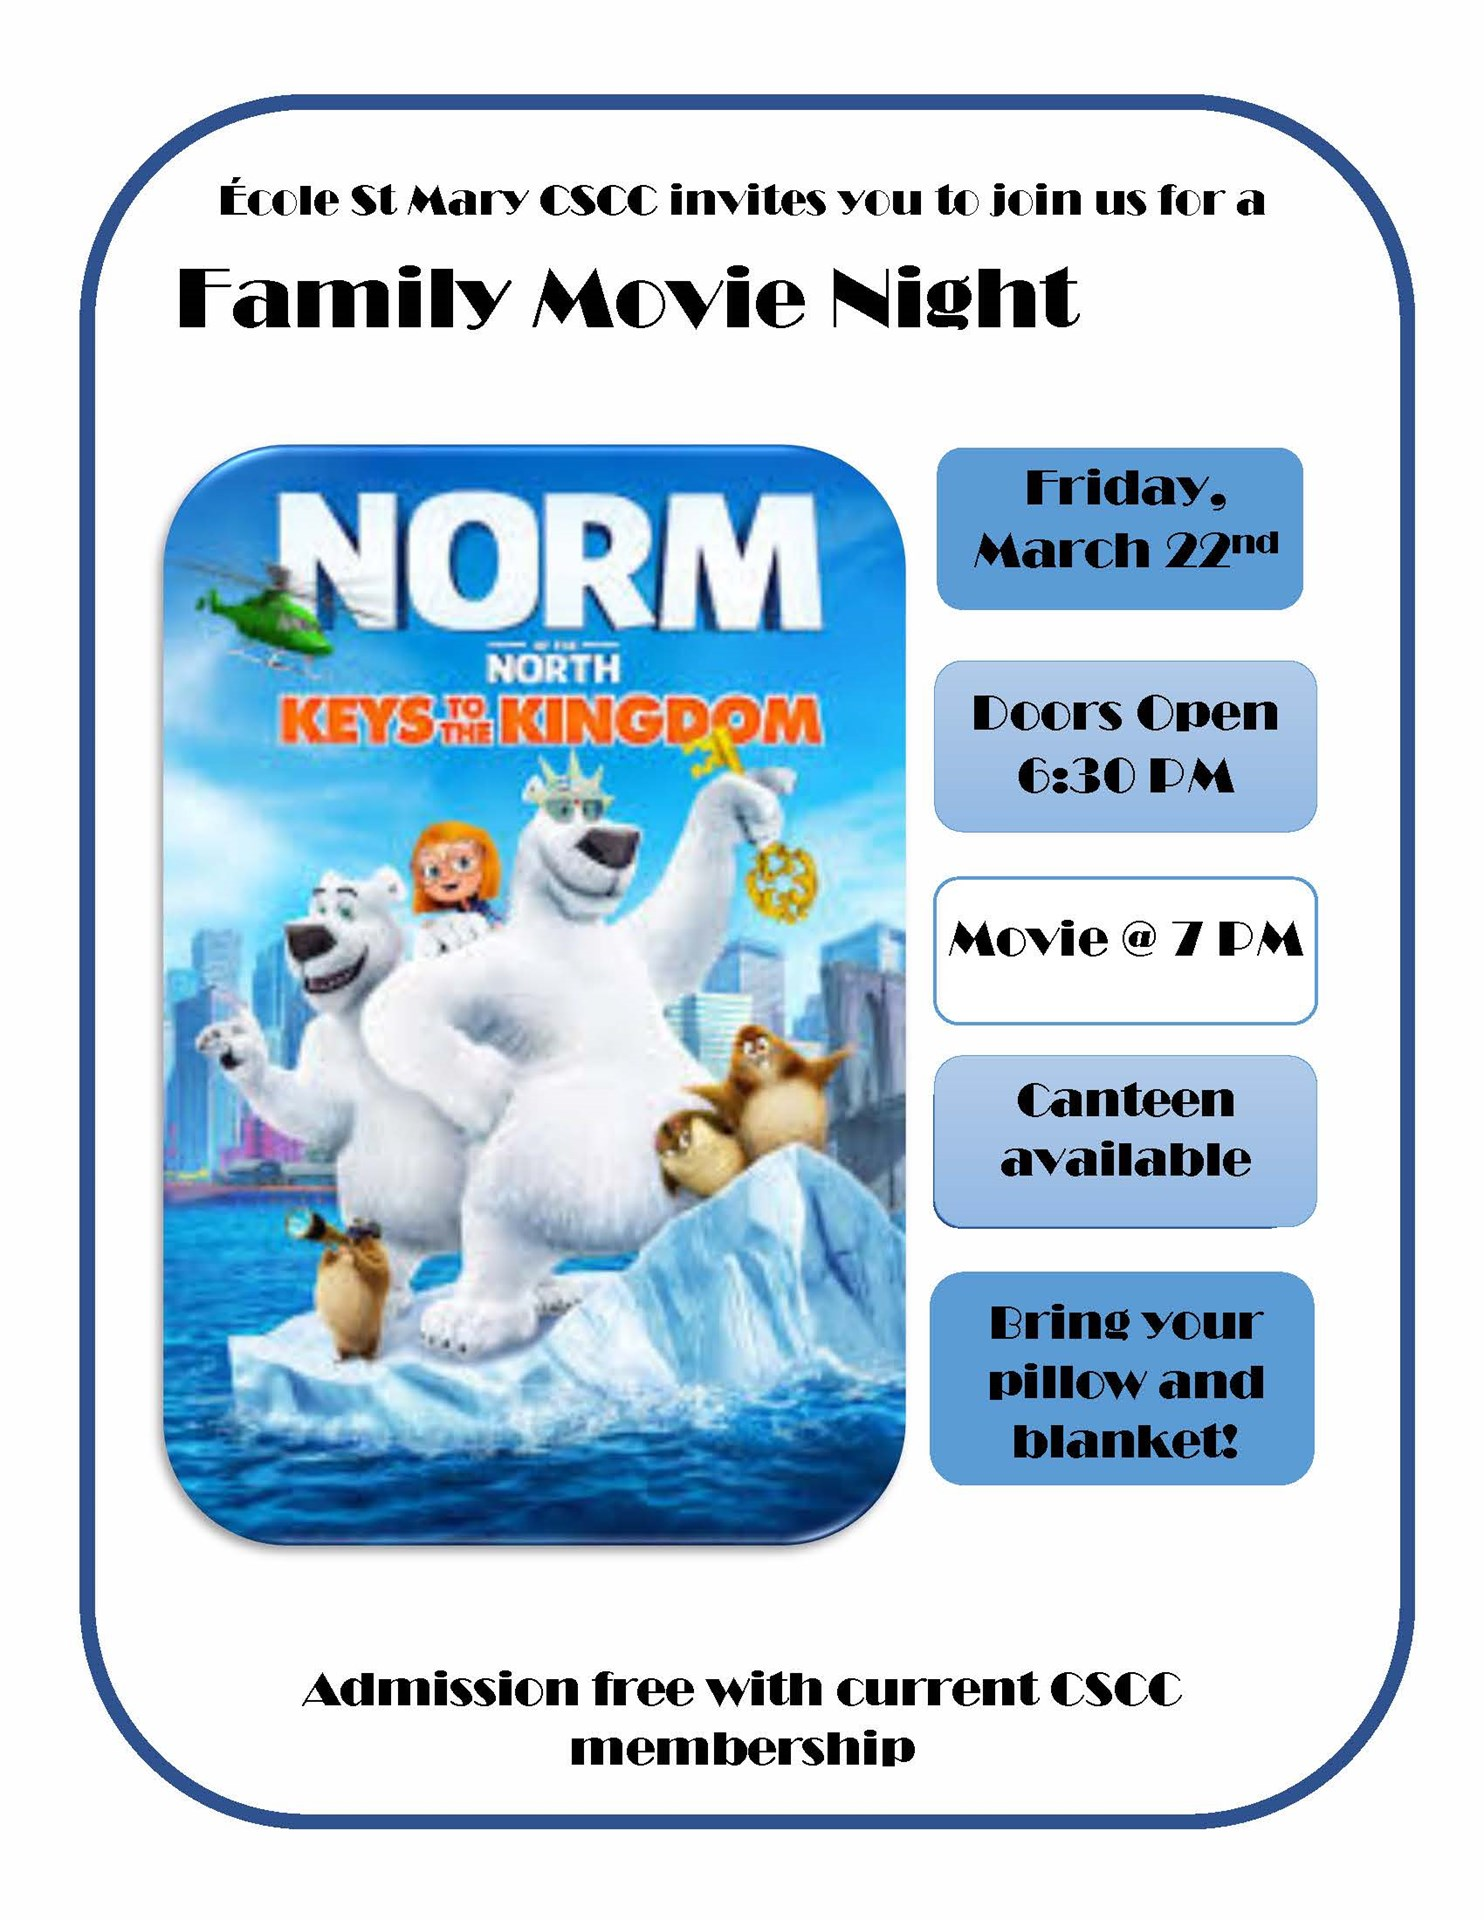 Friday March 22nd Movie night.jpg